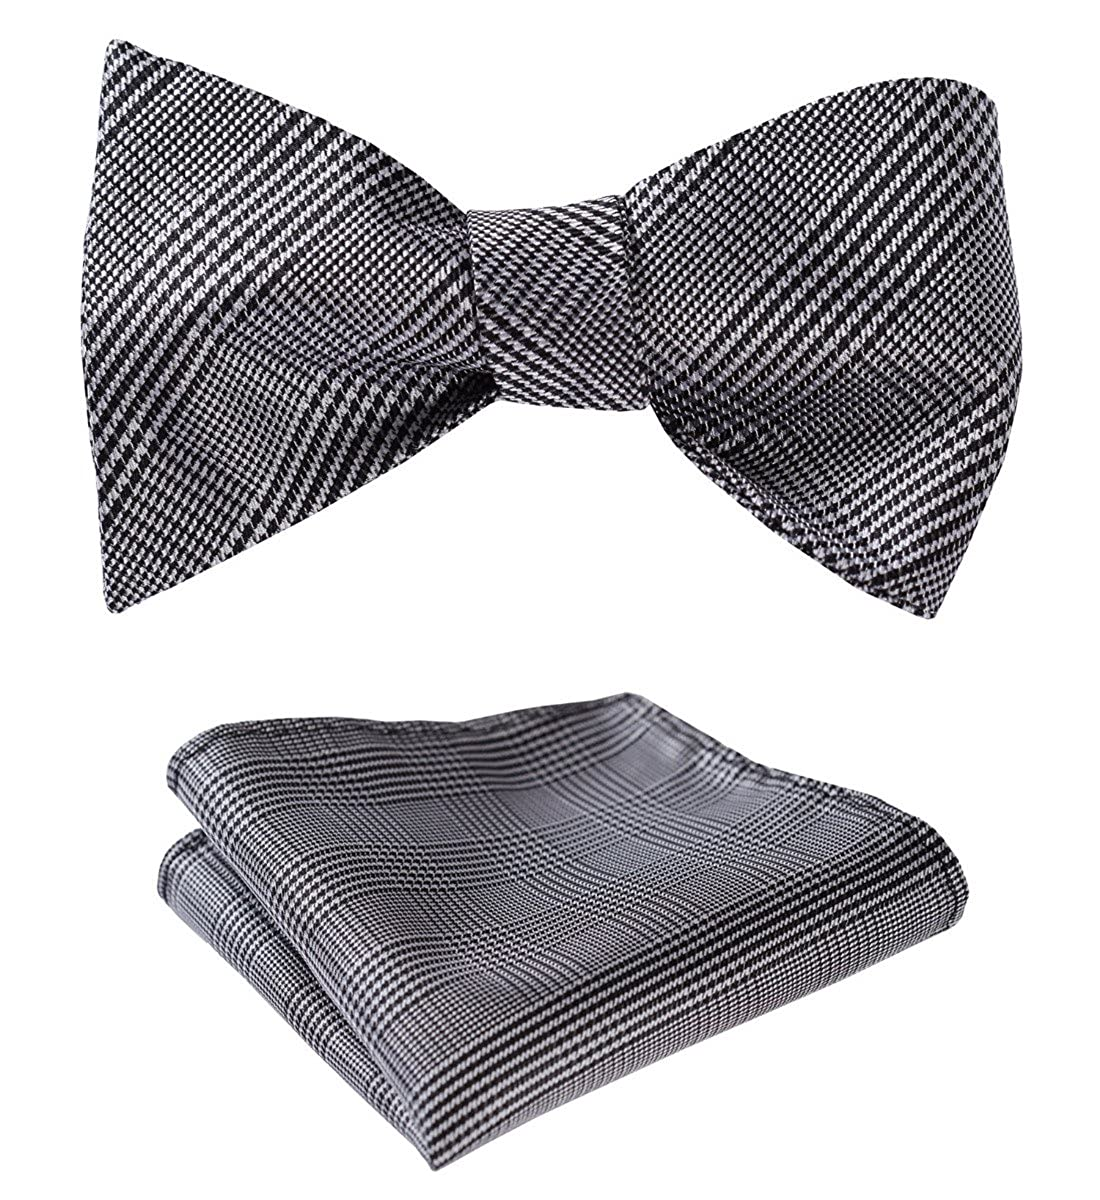 HISDERN Men's Check Handkerchief Jacquard Party Wedding Self Bow Tie Pocket Square Set BC807QS